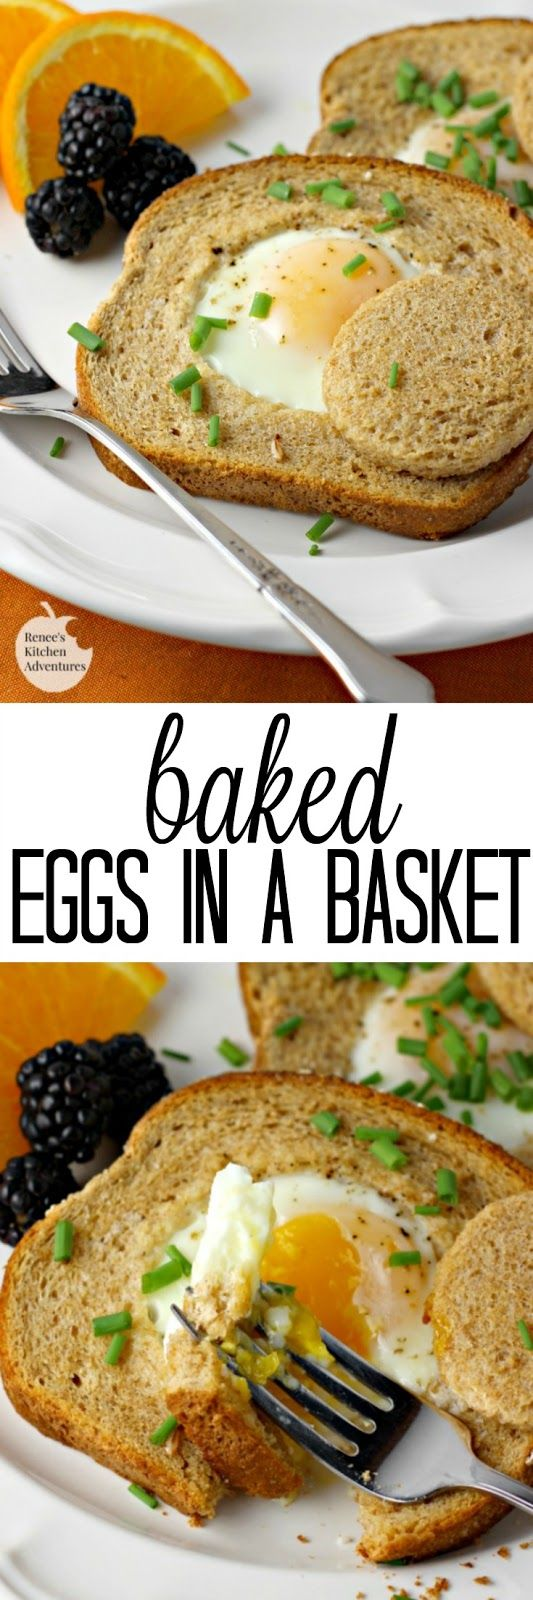 Baked Eggs in a Basket | by Renee's Kitchen Adventures - Easy recipe for baked eggs in a basket aka eggs in hole perfect for breakfast or brunch